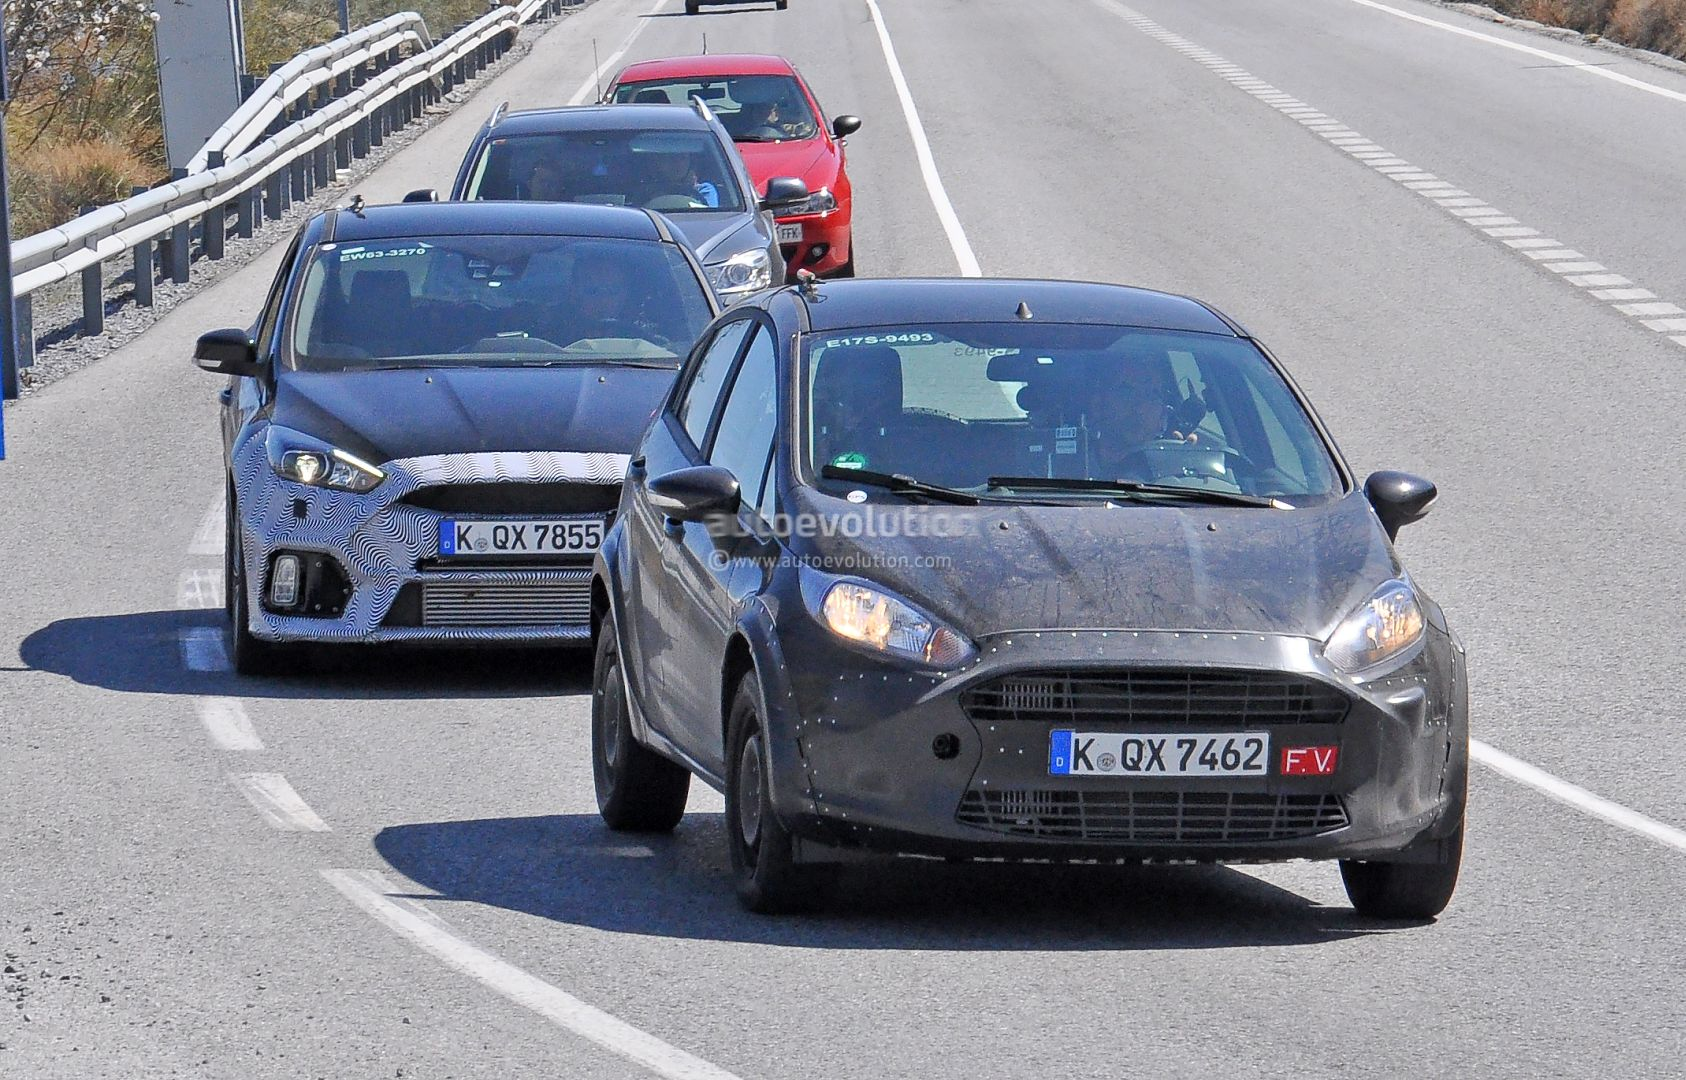 Focus St Hp >> 2017 Ford Fiesta RS Spied for the First Time - autoevolution